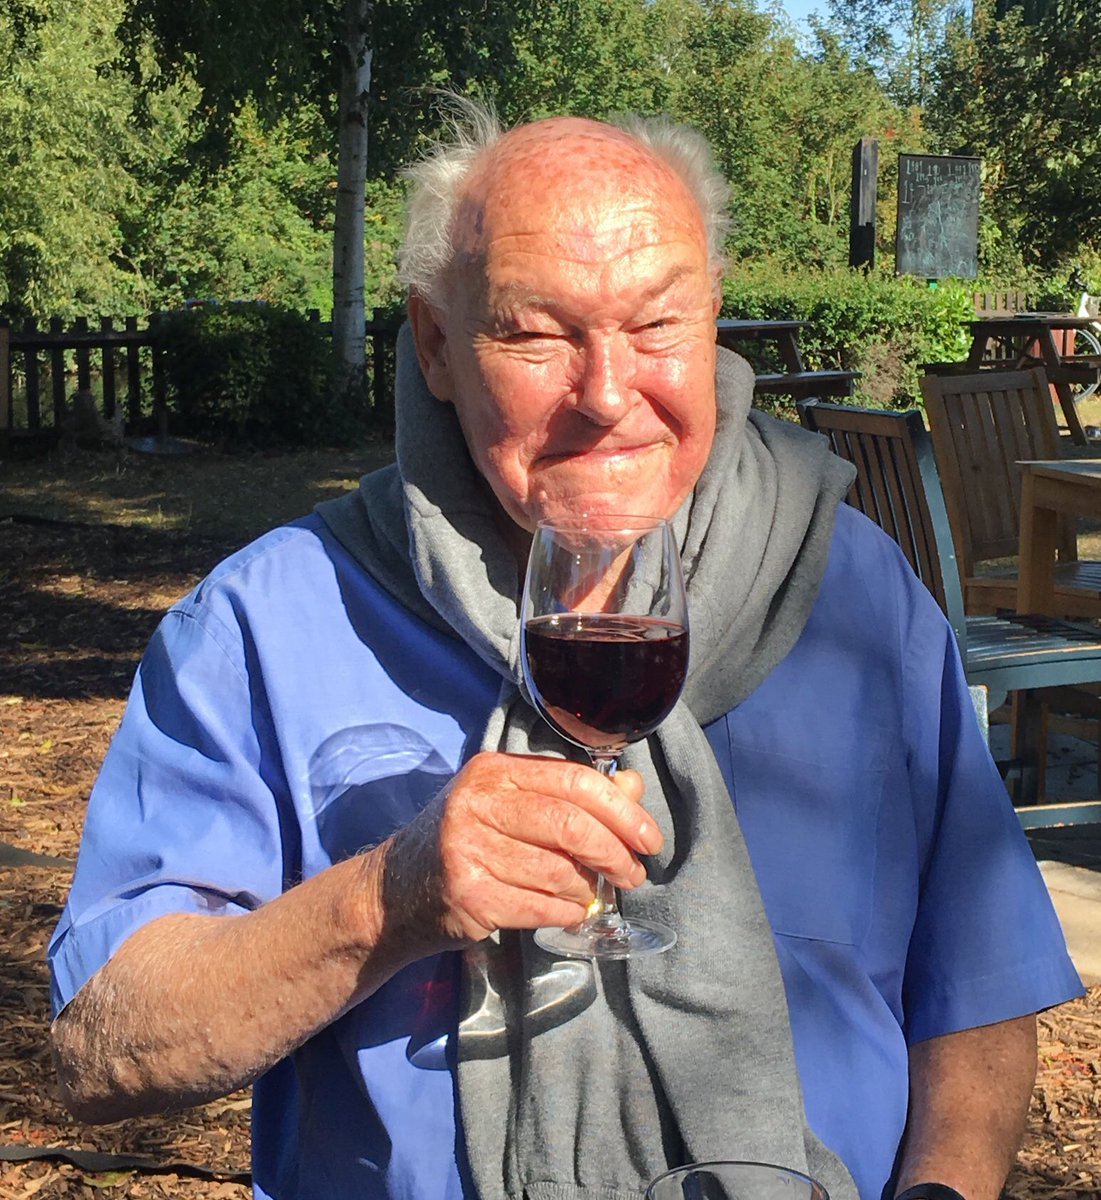 Cheers! Happy birthday to the great Timothy West, 86 today. He's the best.